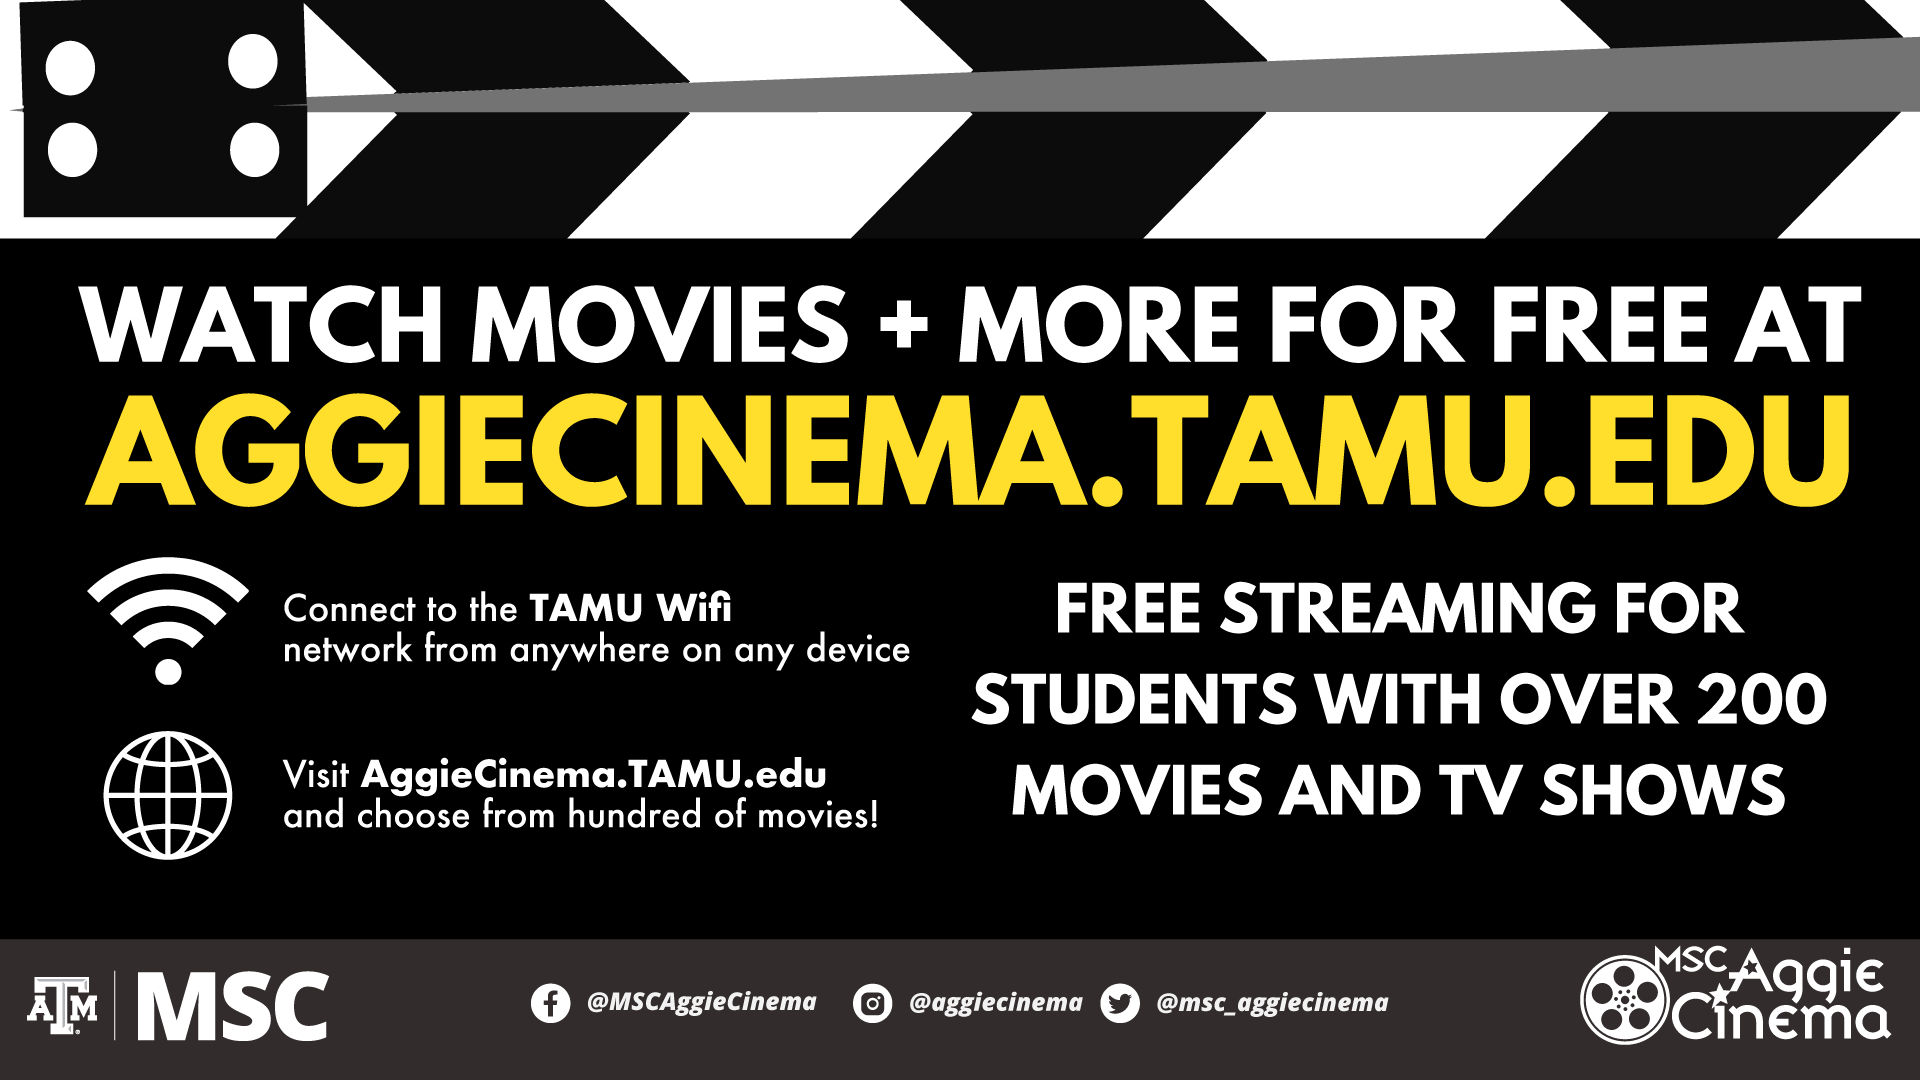 Watch Movies and More for free at Aggiecinema.tamu.edu Connect to the TAMU Wifi network from anywhere on any device. Visit AggieCinema.tamu.edu and choose from hundred of movies! Free Streaming for students with over 200 movies and tv shows. Facebook: MSCAggieCinema ; Instagram: aggiecinema; Twitter: msc_aggiecinema